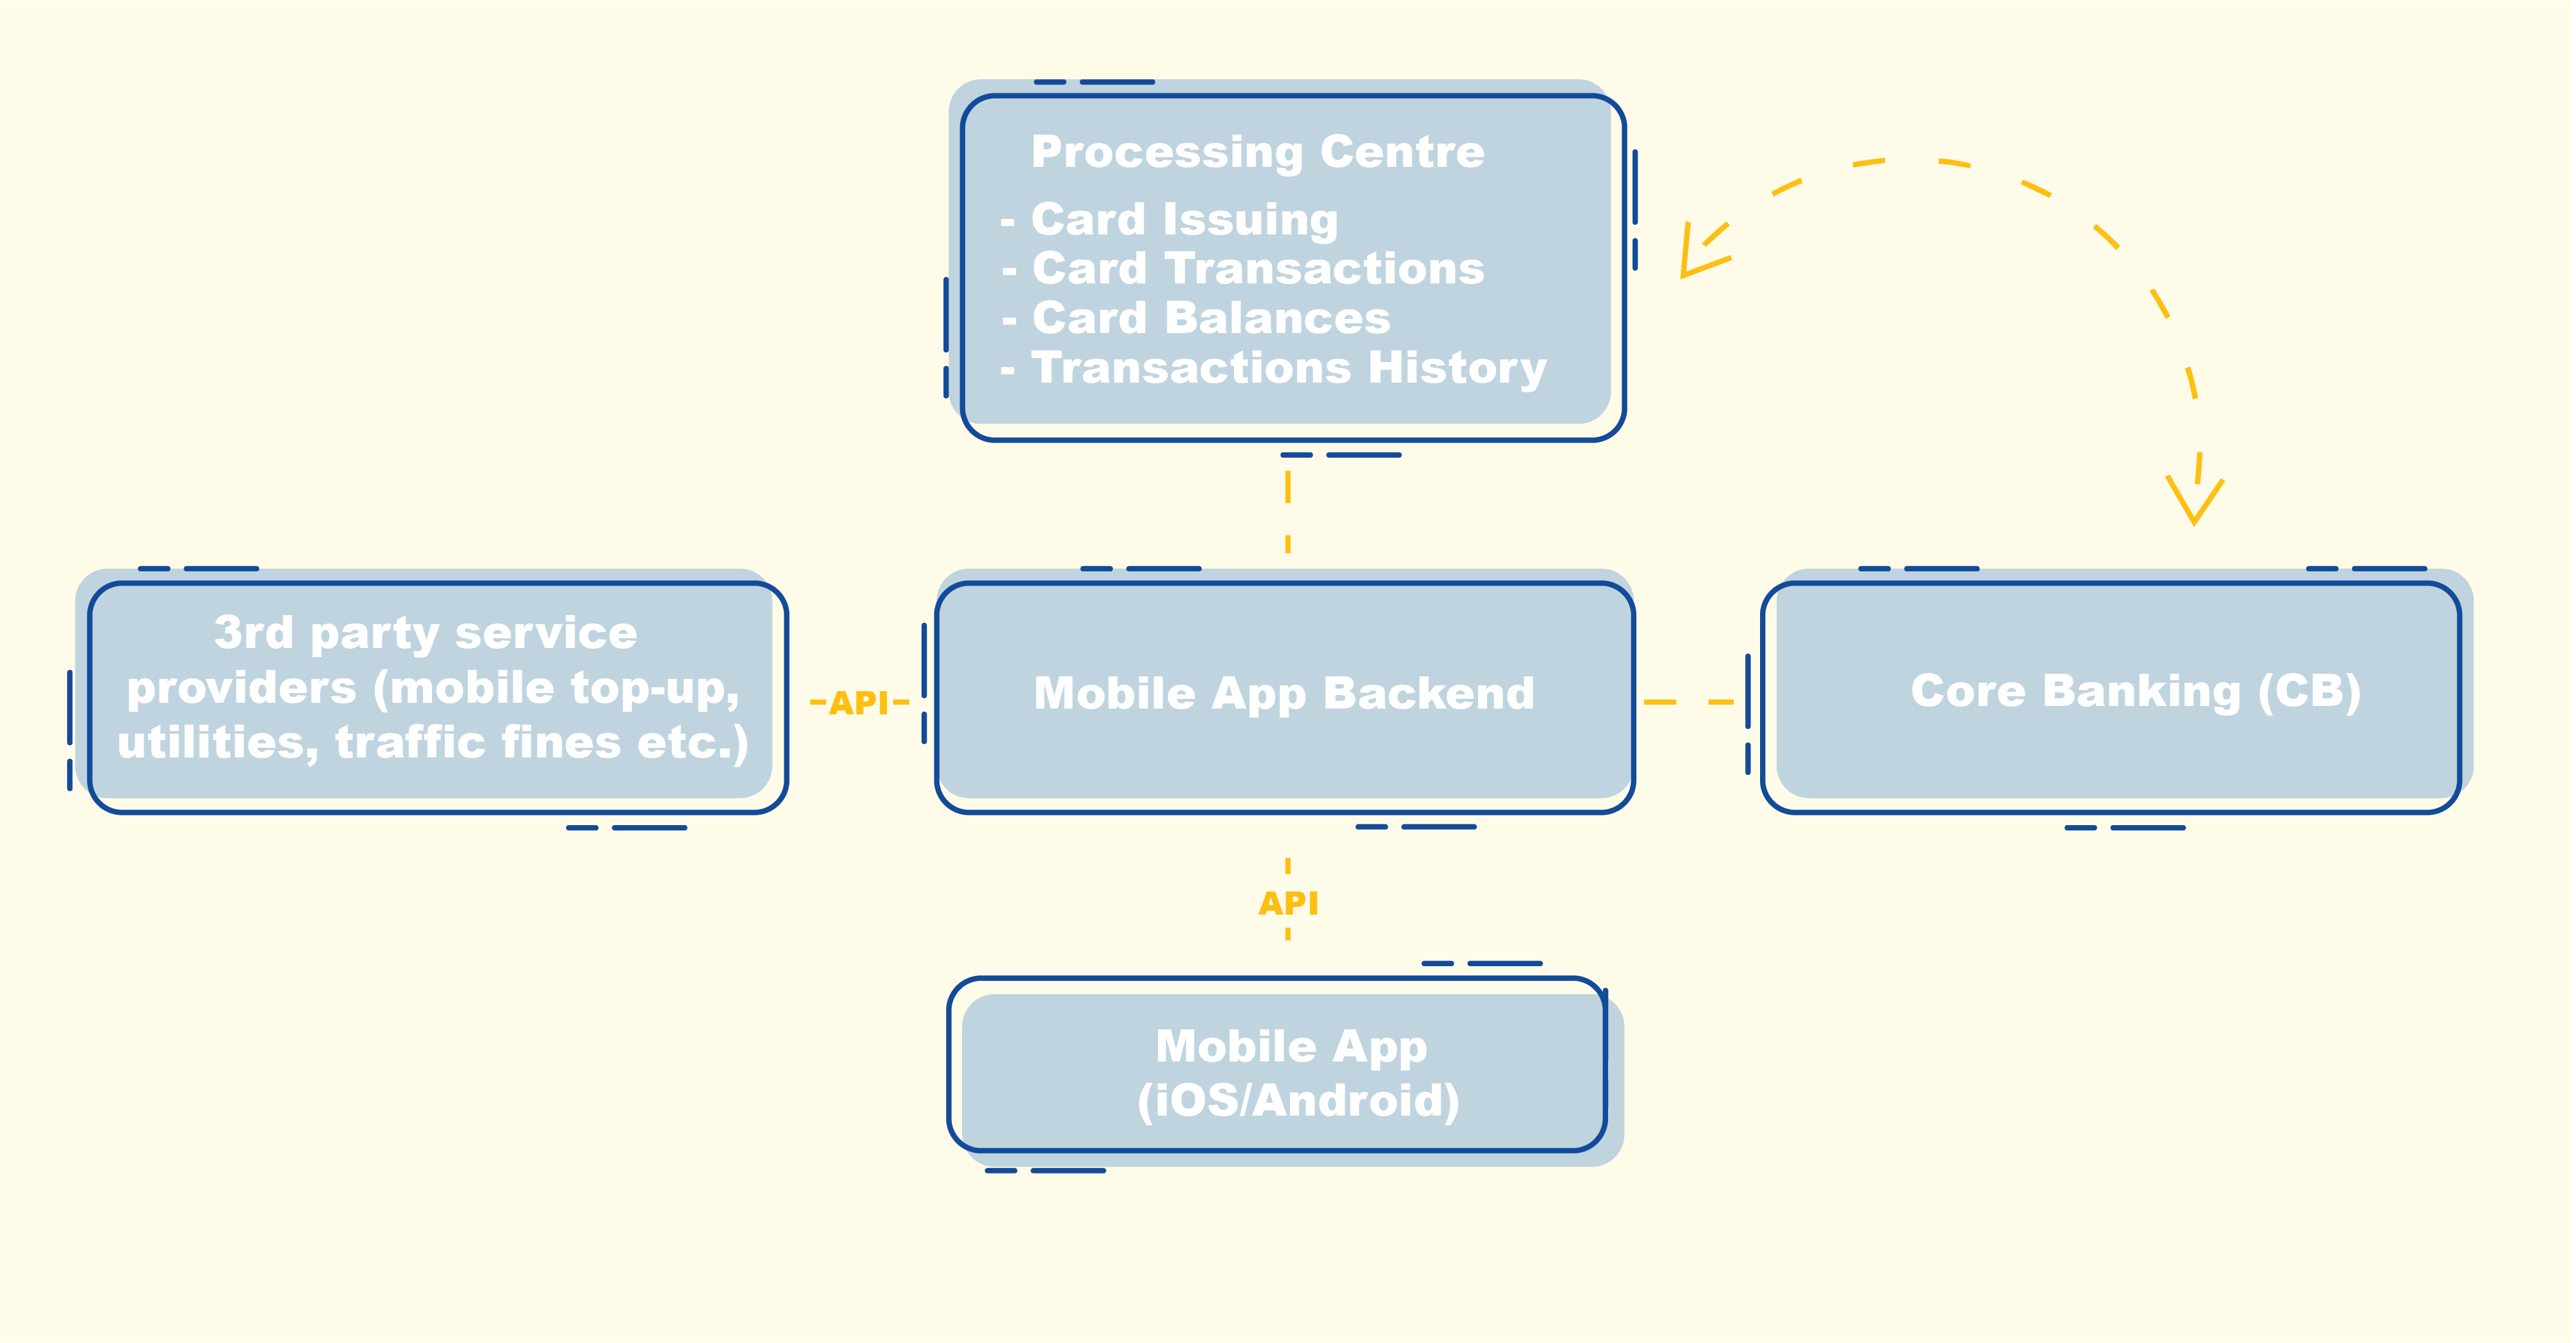 How banking information systems work